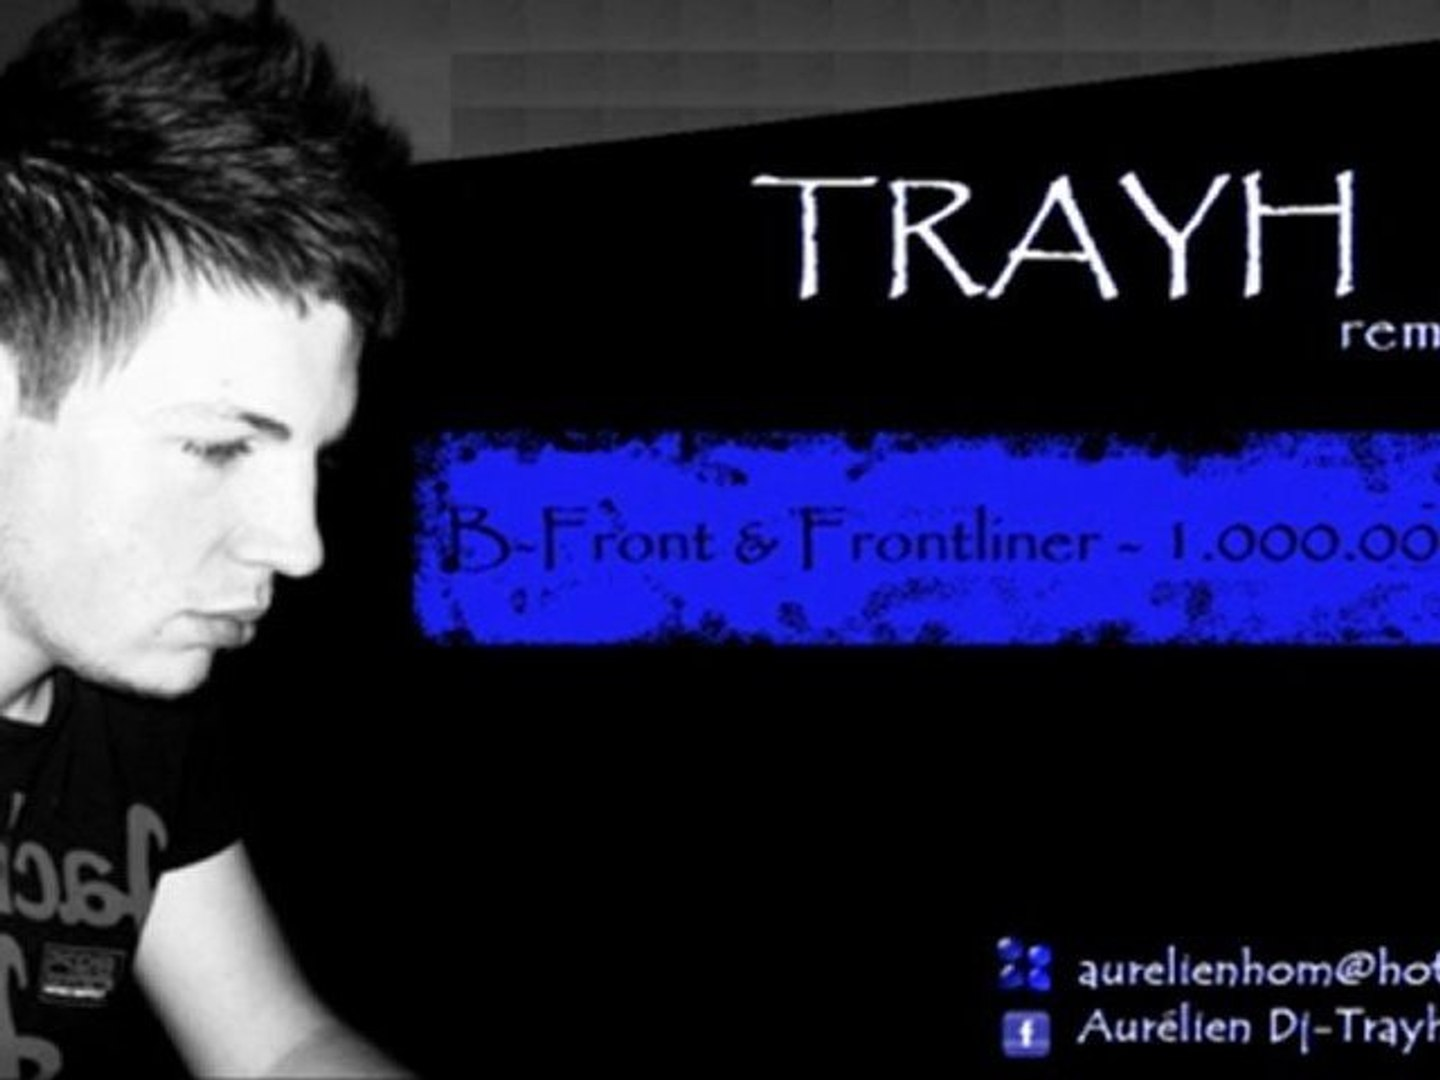 B-Front - Frontliner - 1.000.000 stars (Trayh remix) preview